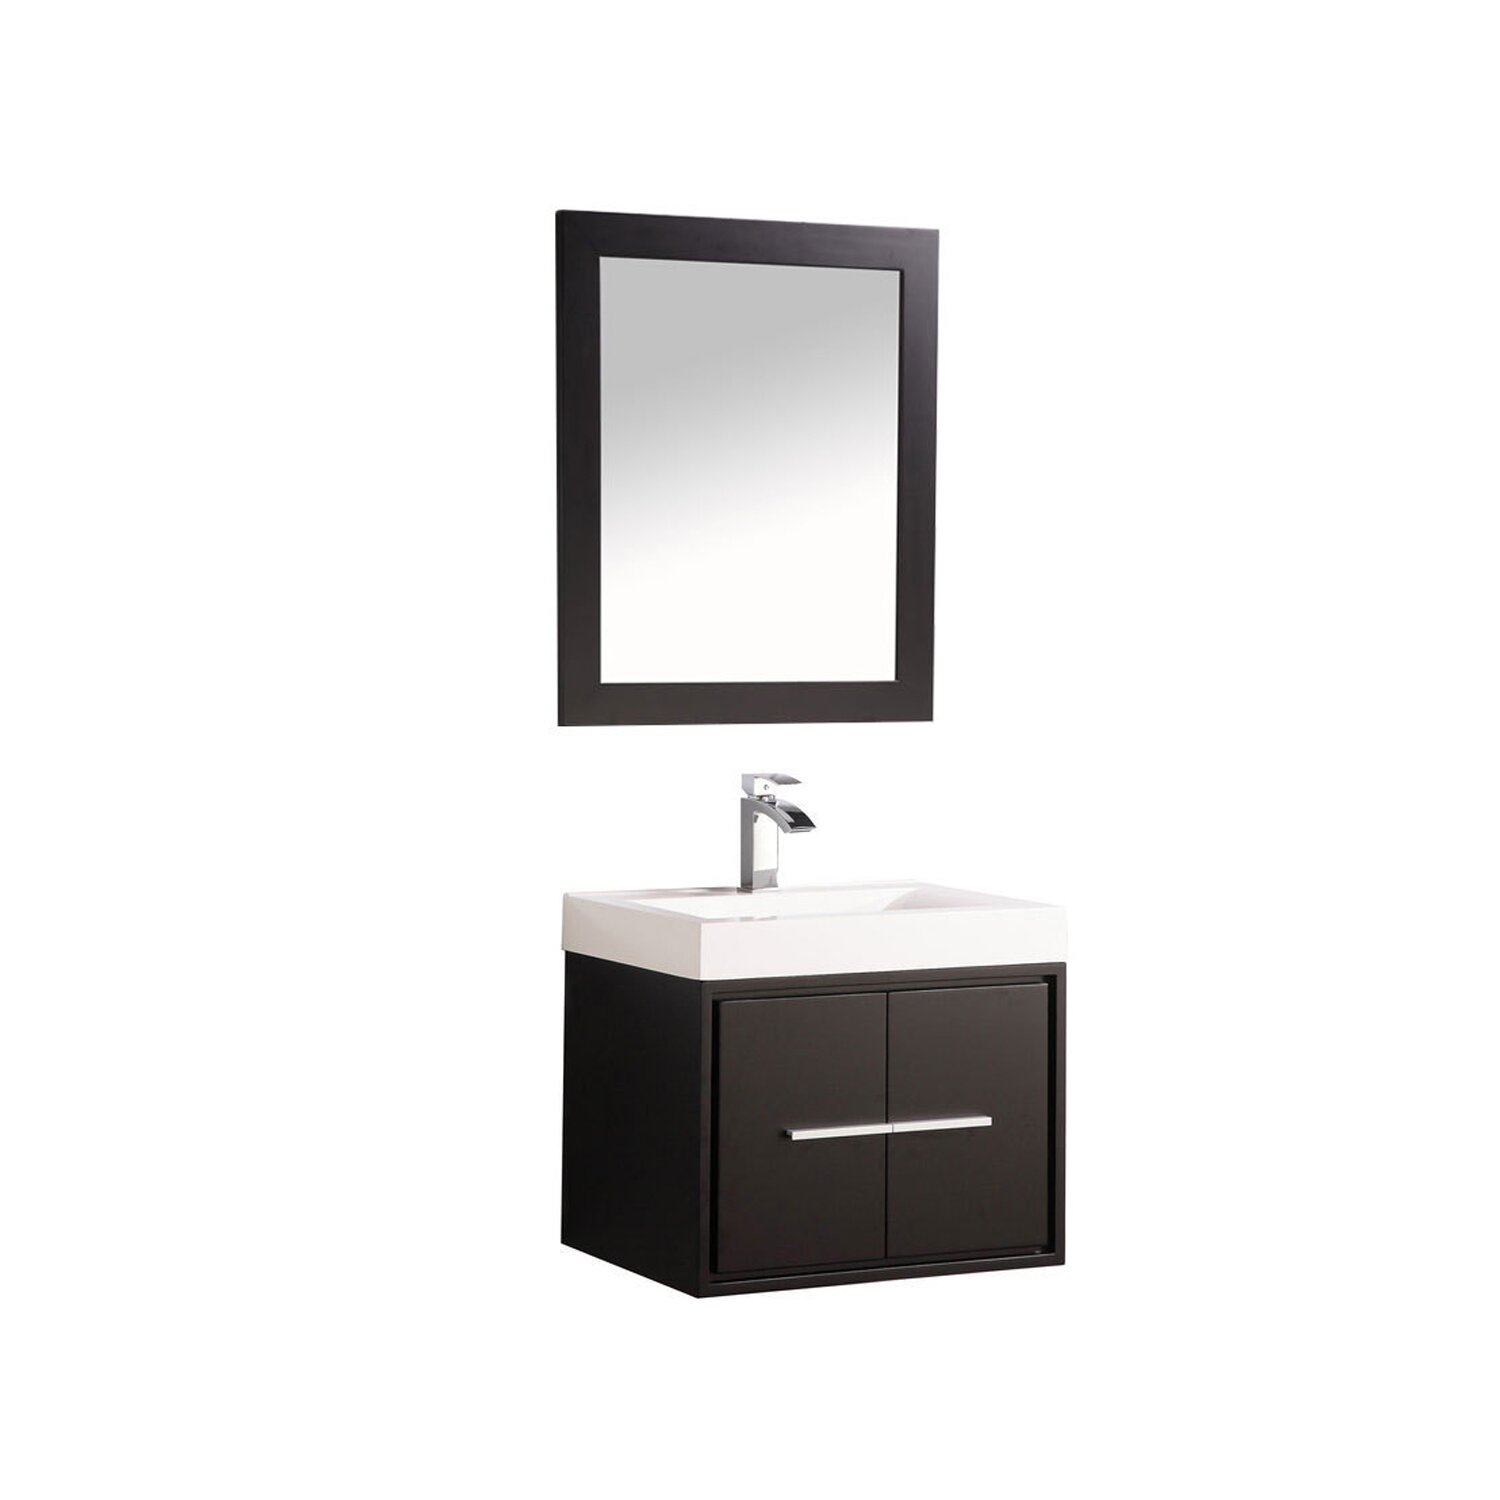 Mtdvanities Cypress 24 Single Floating Bathroom Vanity